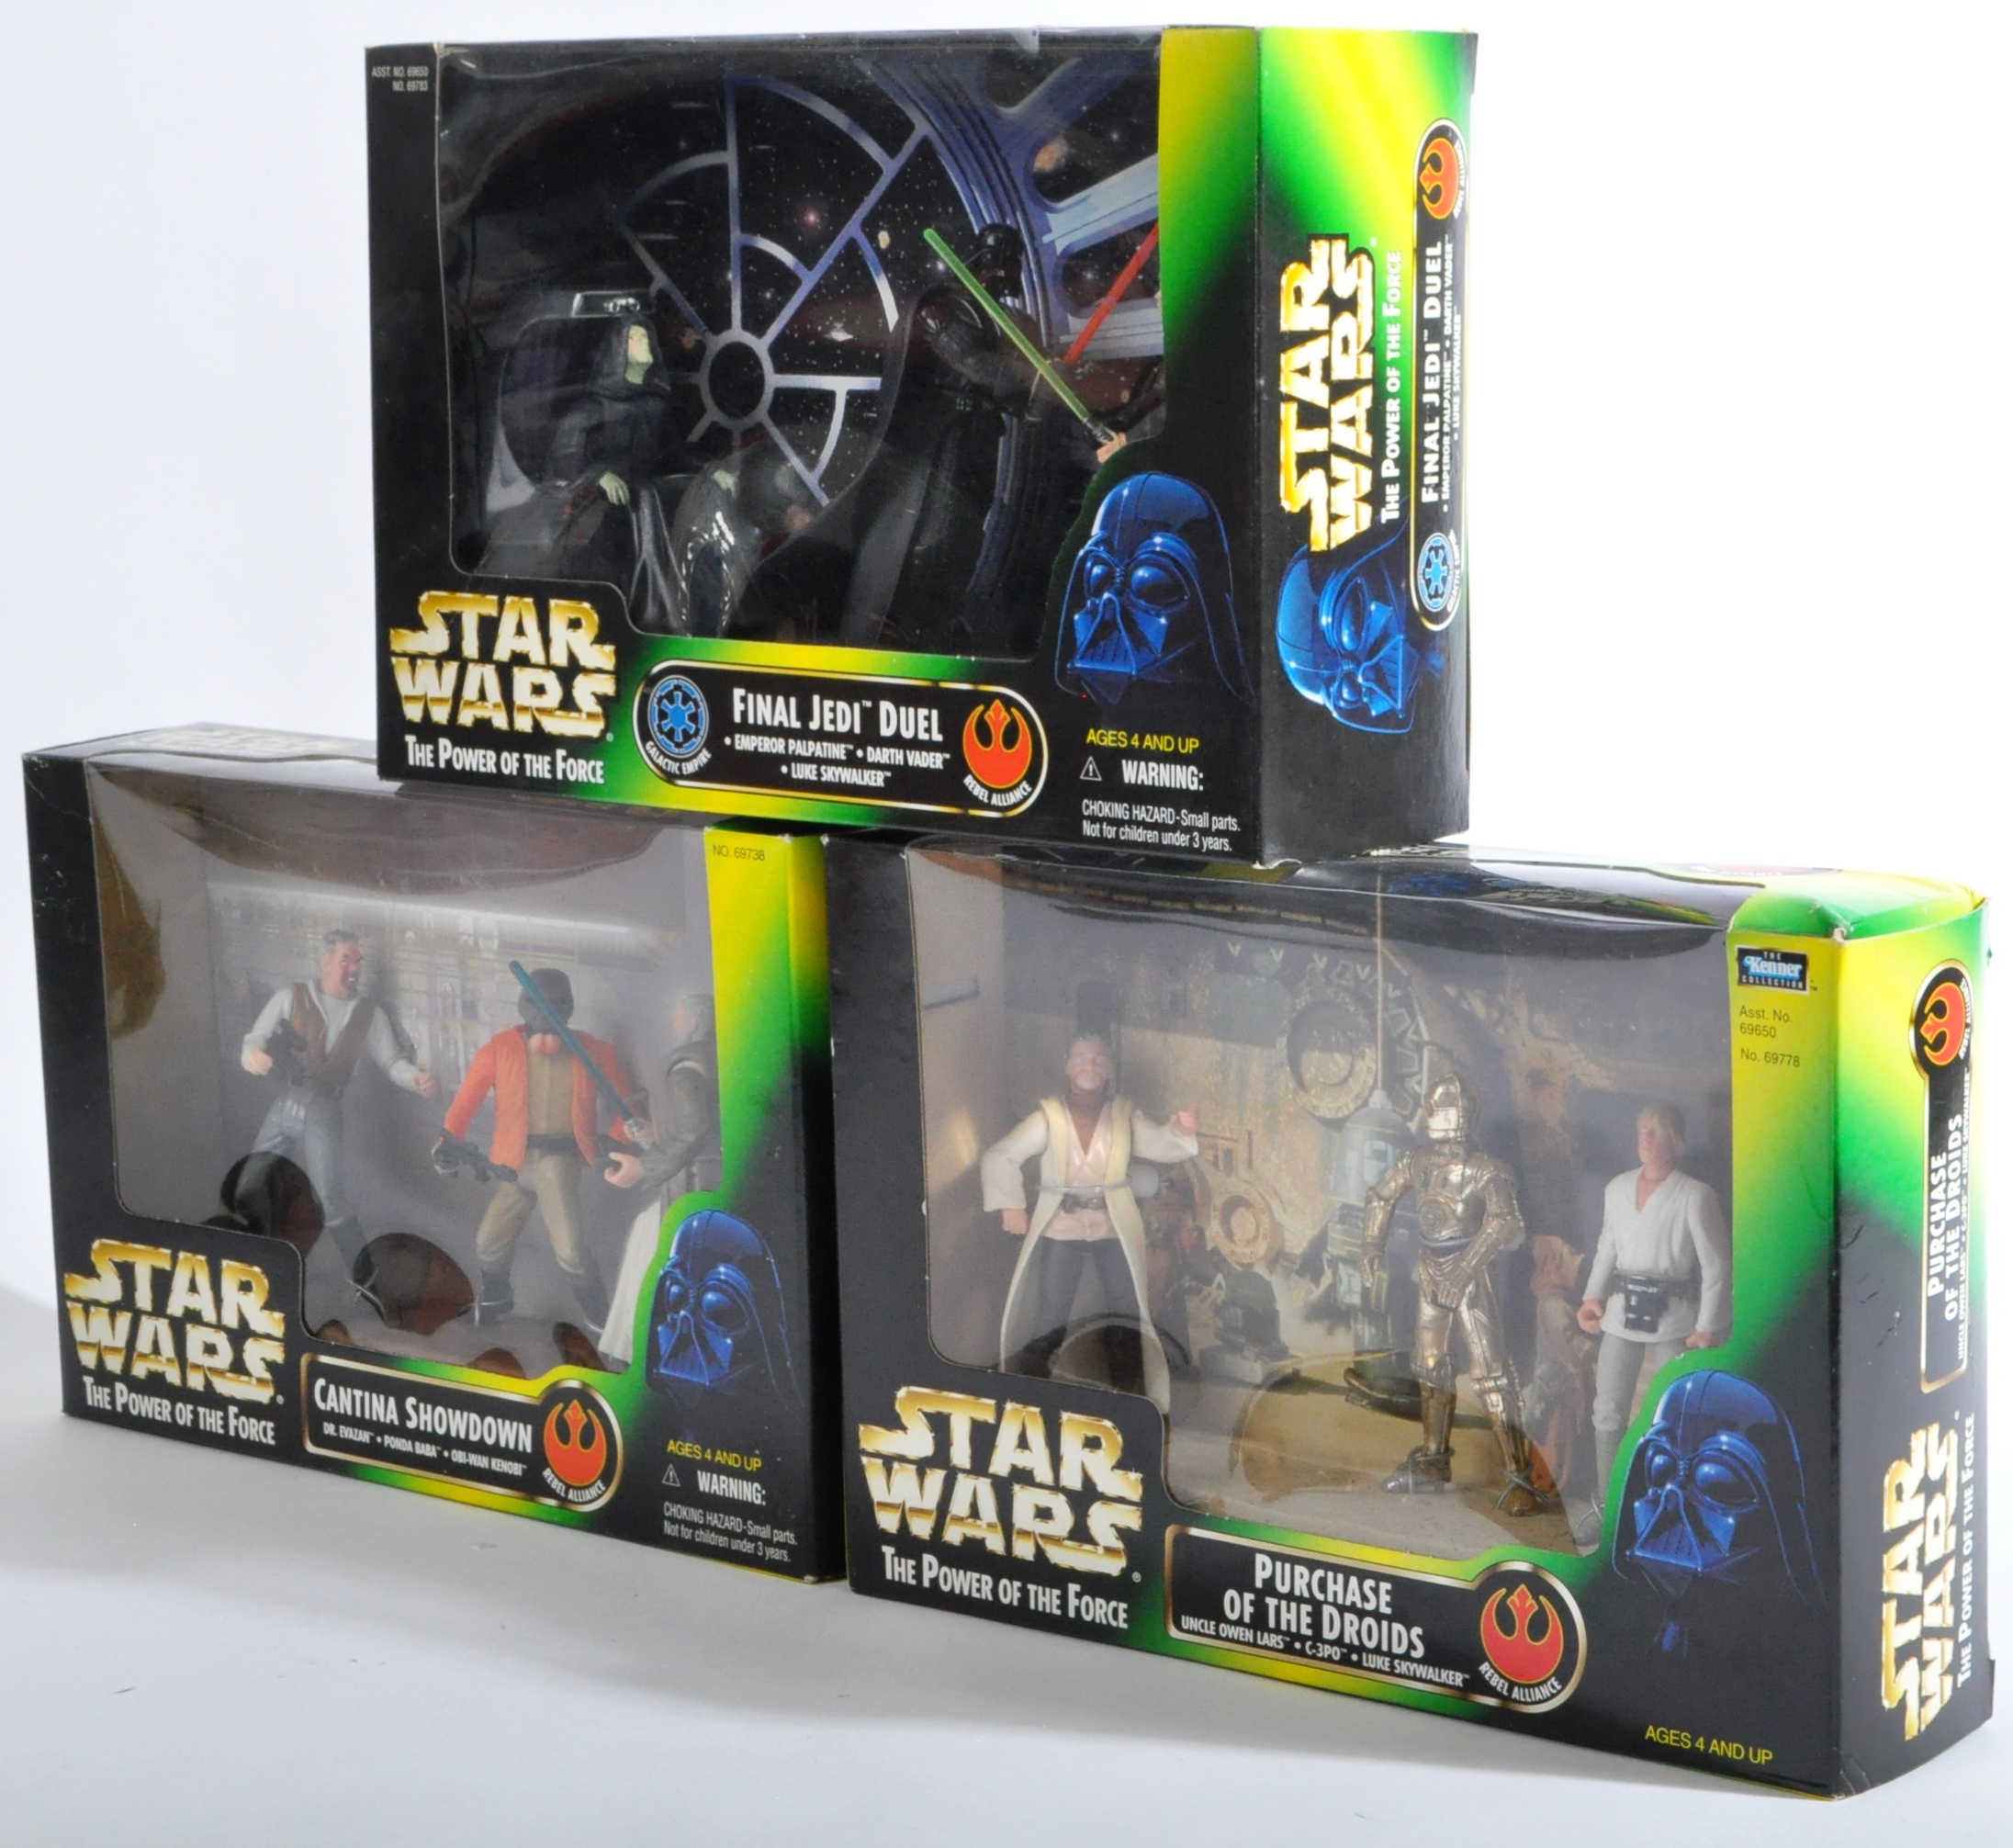 STAR WARS - COLLECTION OF KENNER POWER OF THE FORCE ACTION FIGURES - Image 3 of 5